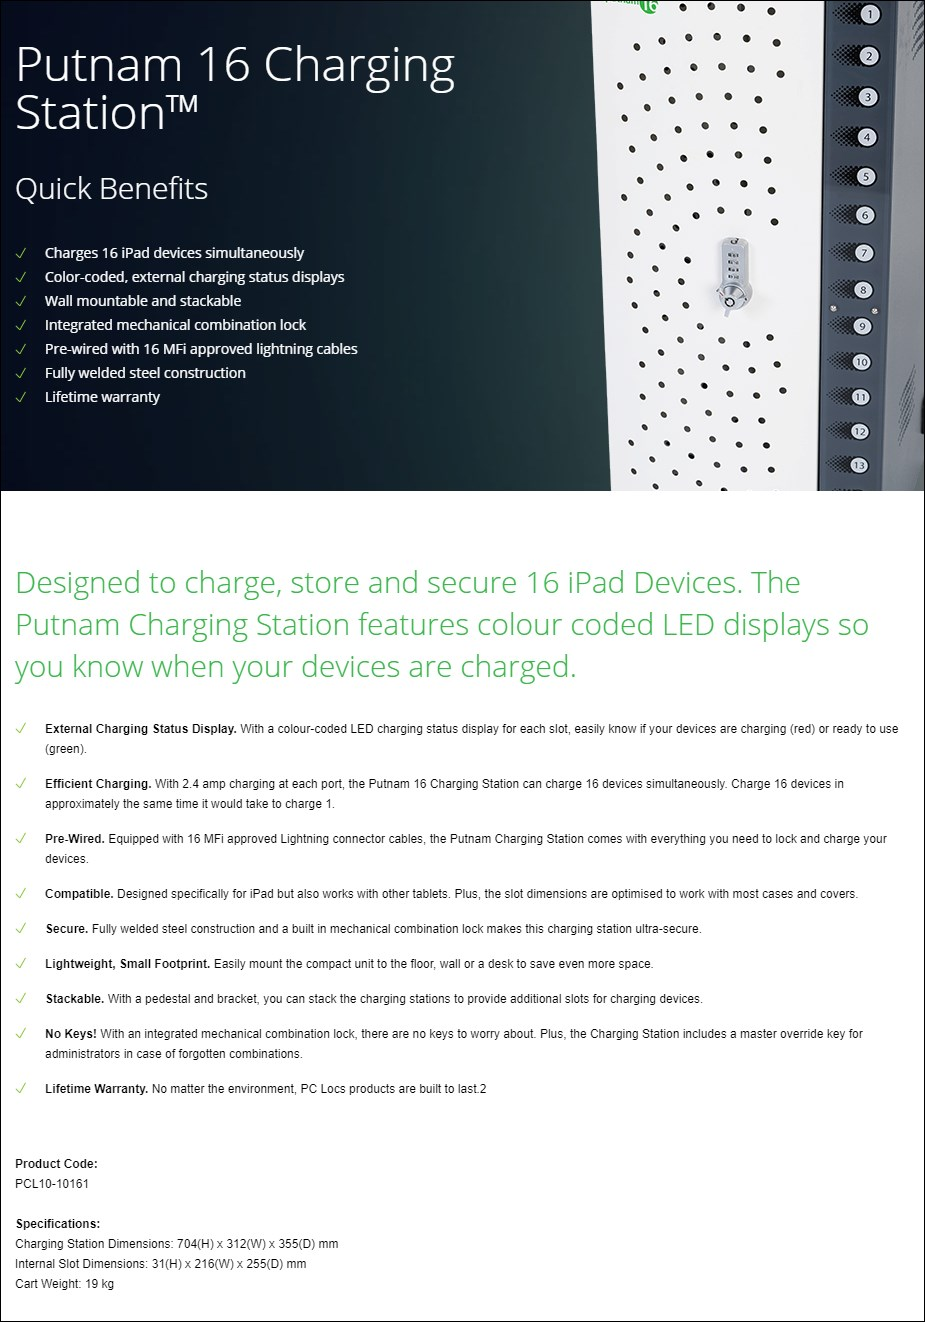 PC Locs Putnam 16 Charging Station - Overview 1